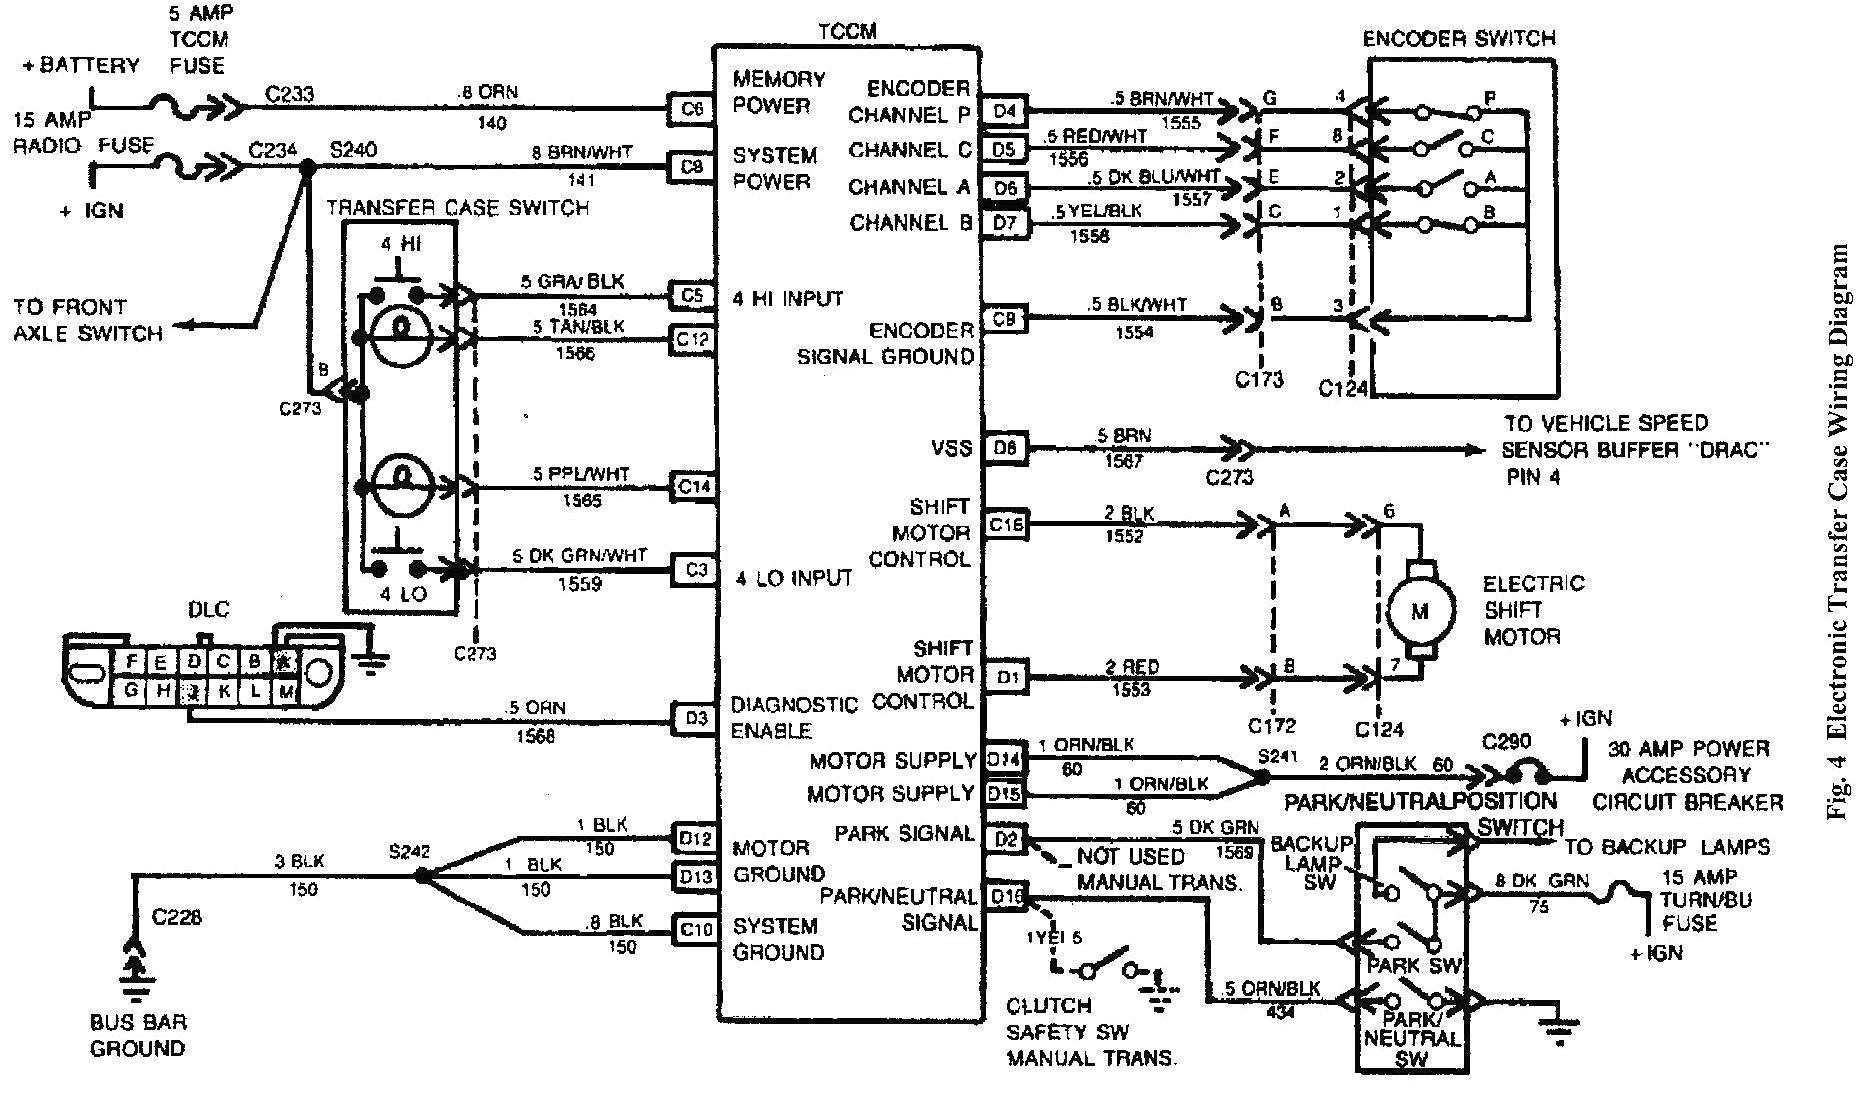 2000 Silverado Transfer Case Wiring Diagram from static-assets.imageservice.cloud